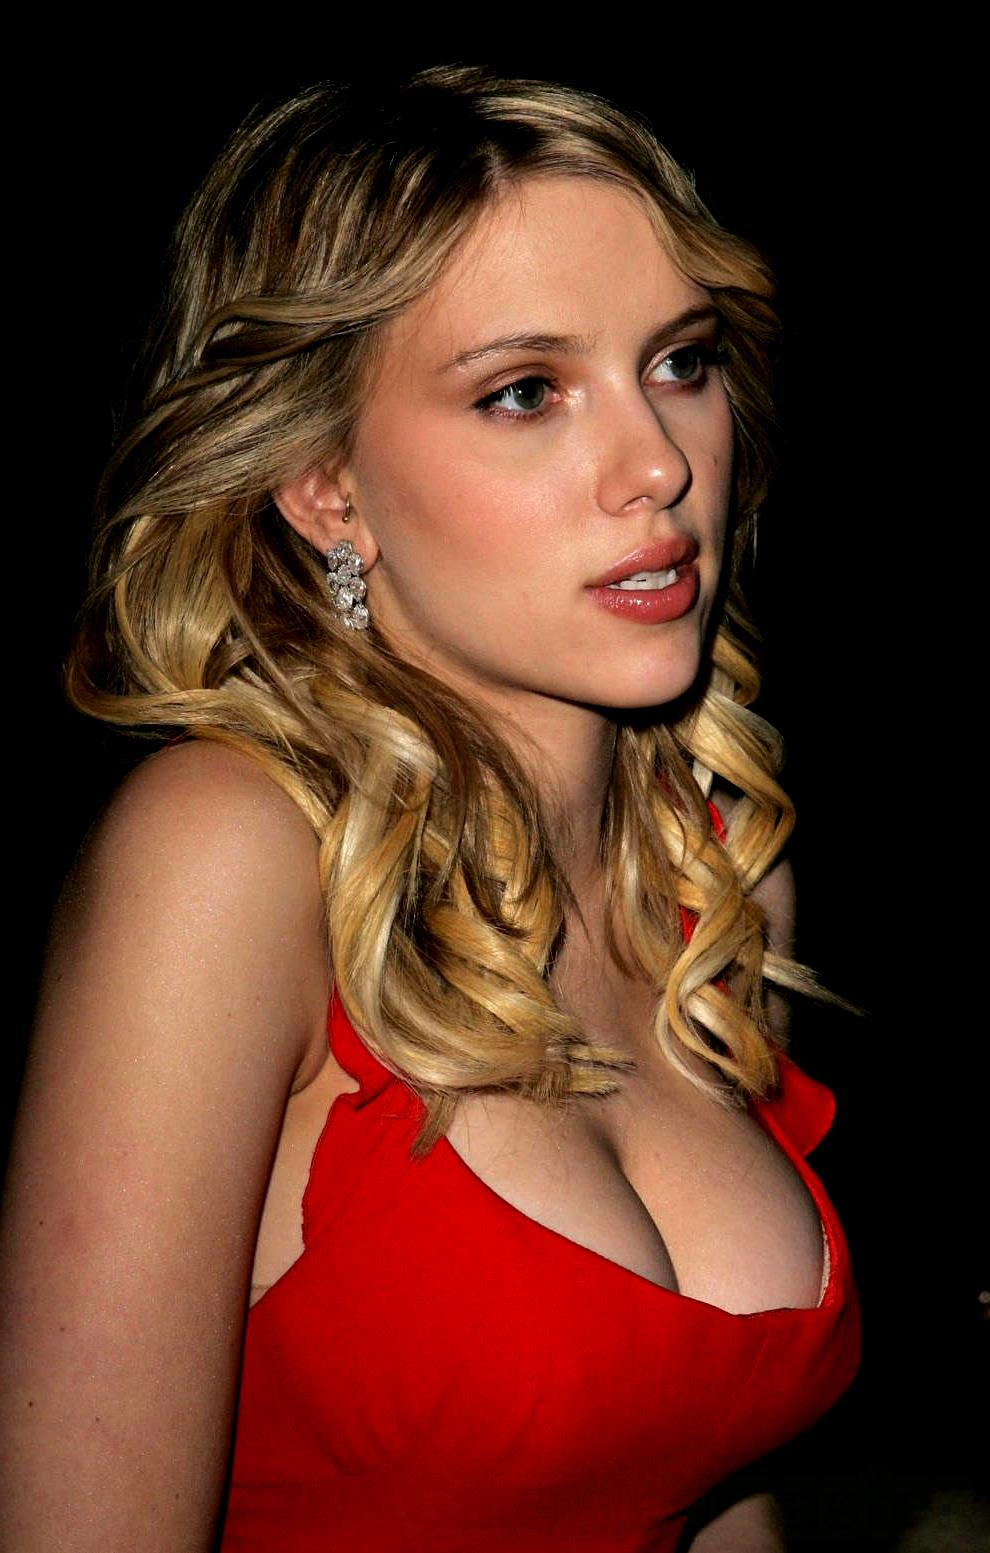 Scarlett Johansson Most Sexy Cleavage Show In Red Dress -1459